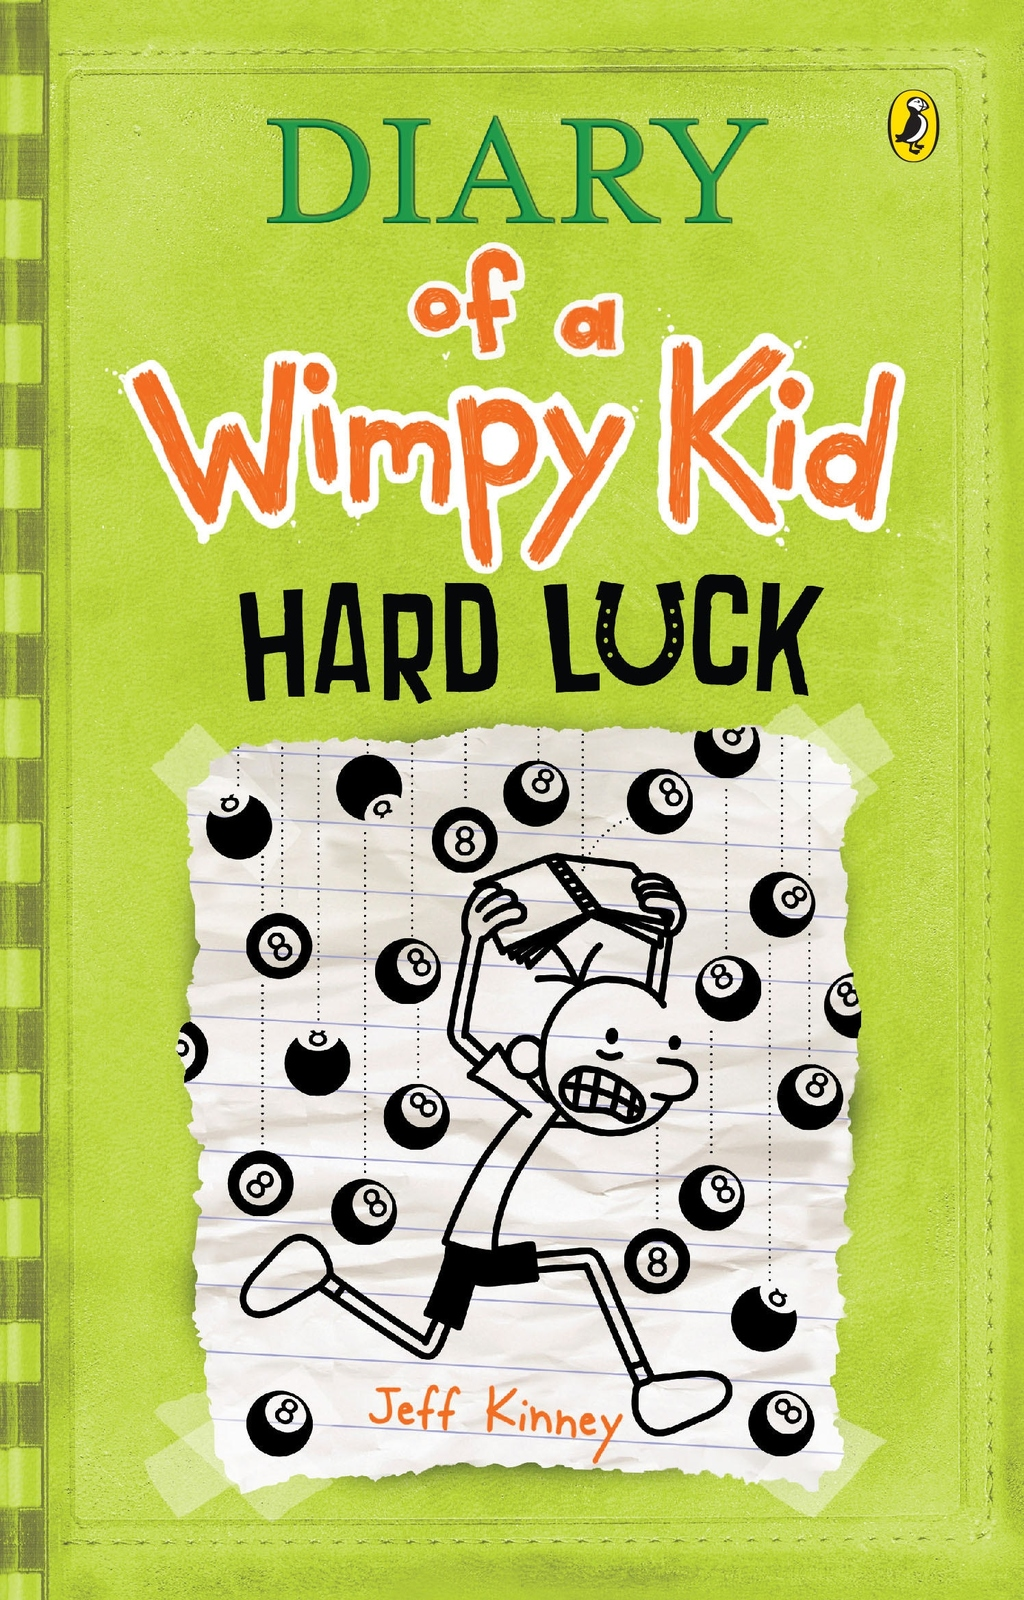 Diary of a Wimpy Kid: Hard Luck (Book 8) by Jeff Kinney image